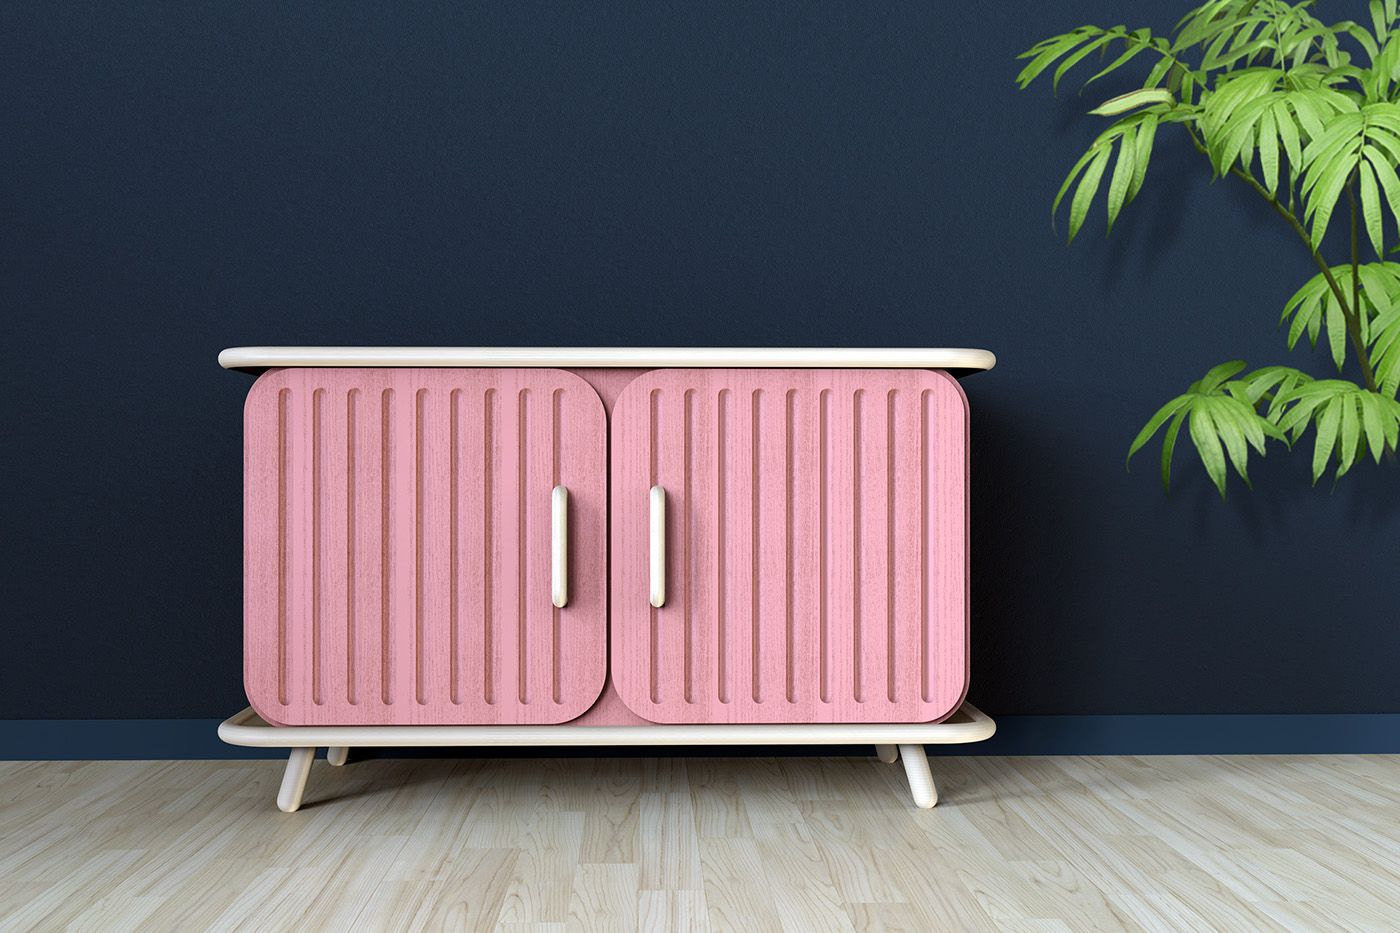 B60 On Behance Benjamin Fournier Rustic Furniture